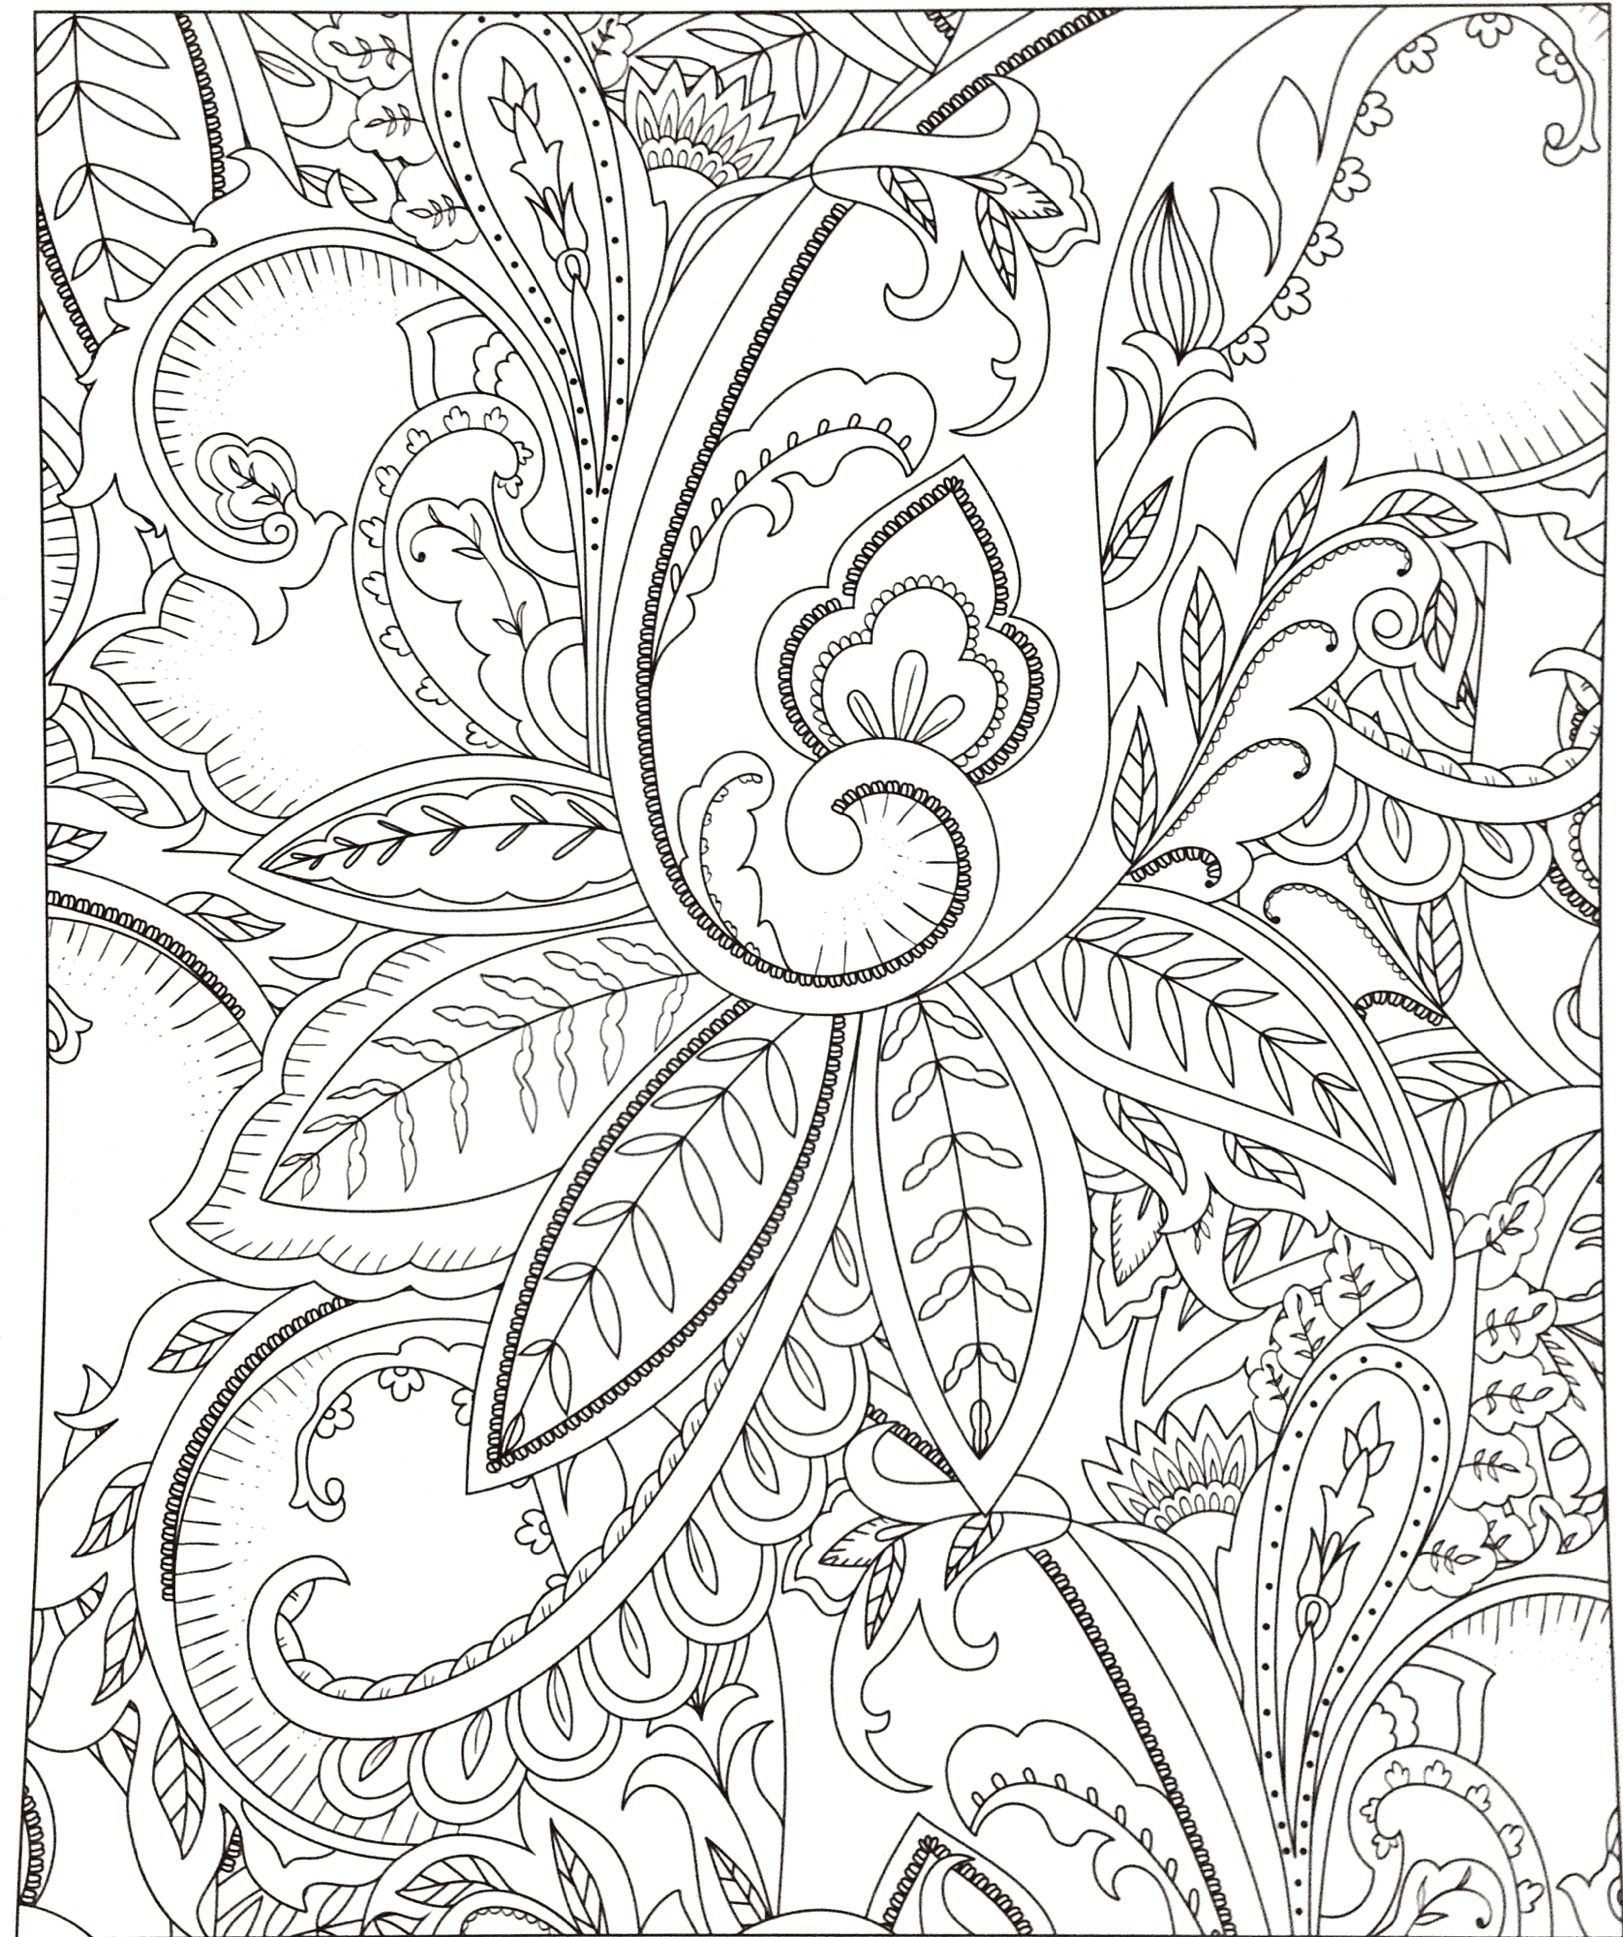 Printable Daisy Coloring Pages  to Print 19m - Free For Children